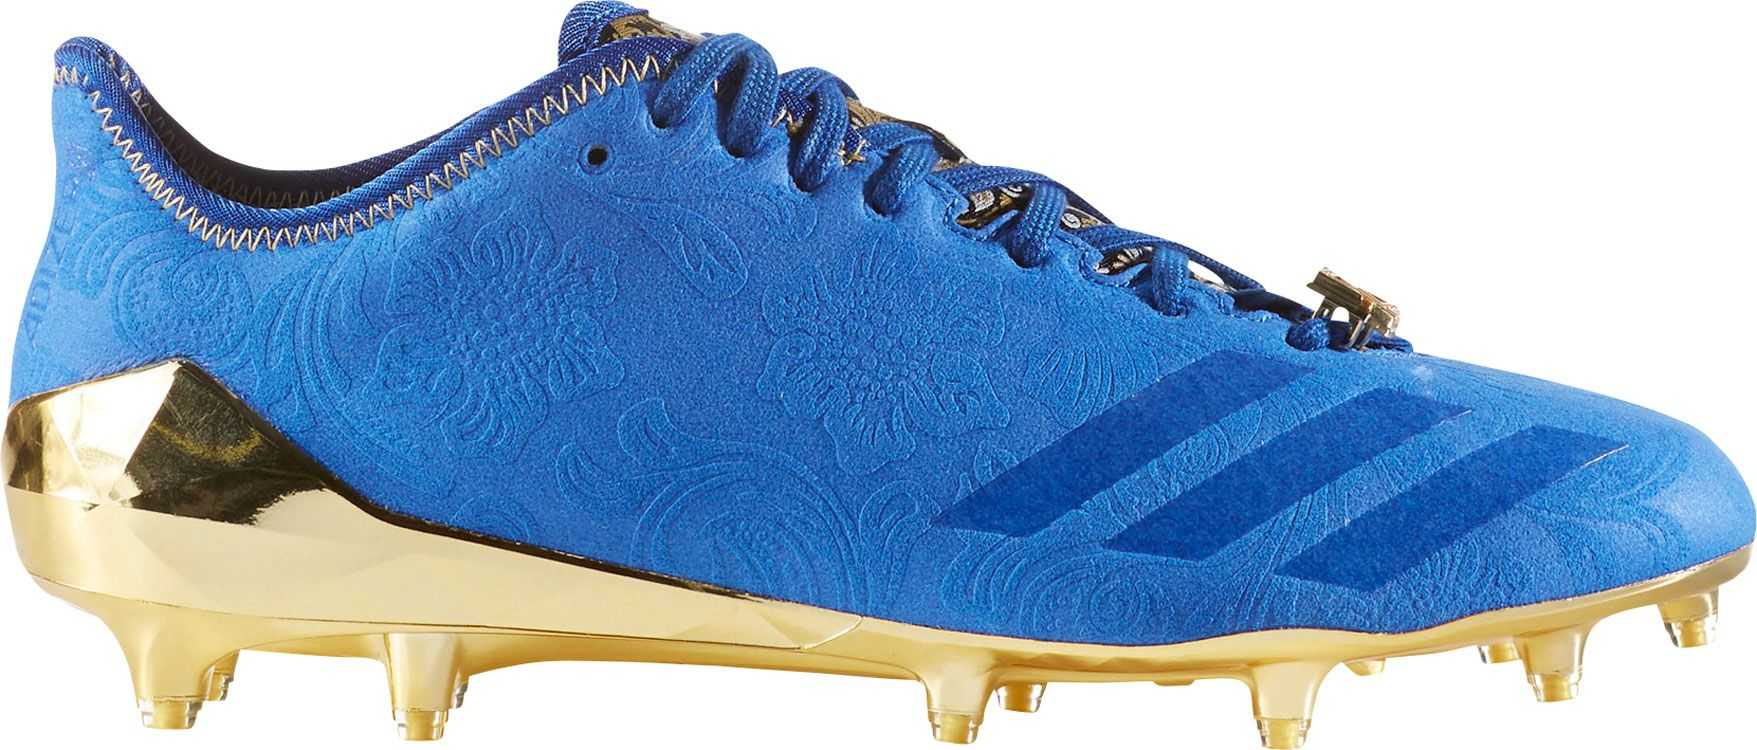 Mens Adidas Football Cleats   Shop Adidas Shoes For Men · Women ... 81e38587fc